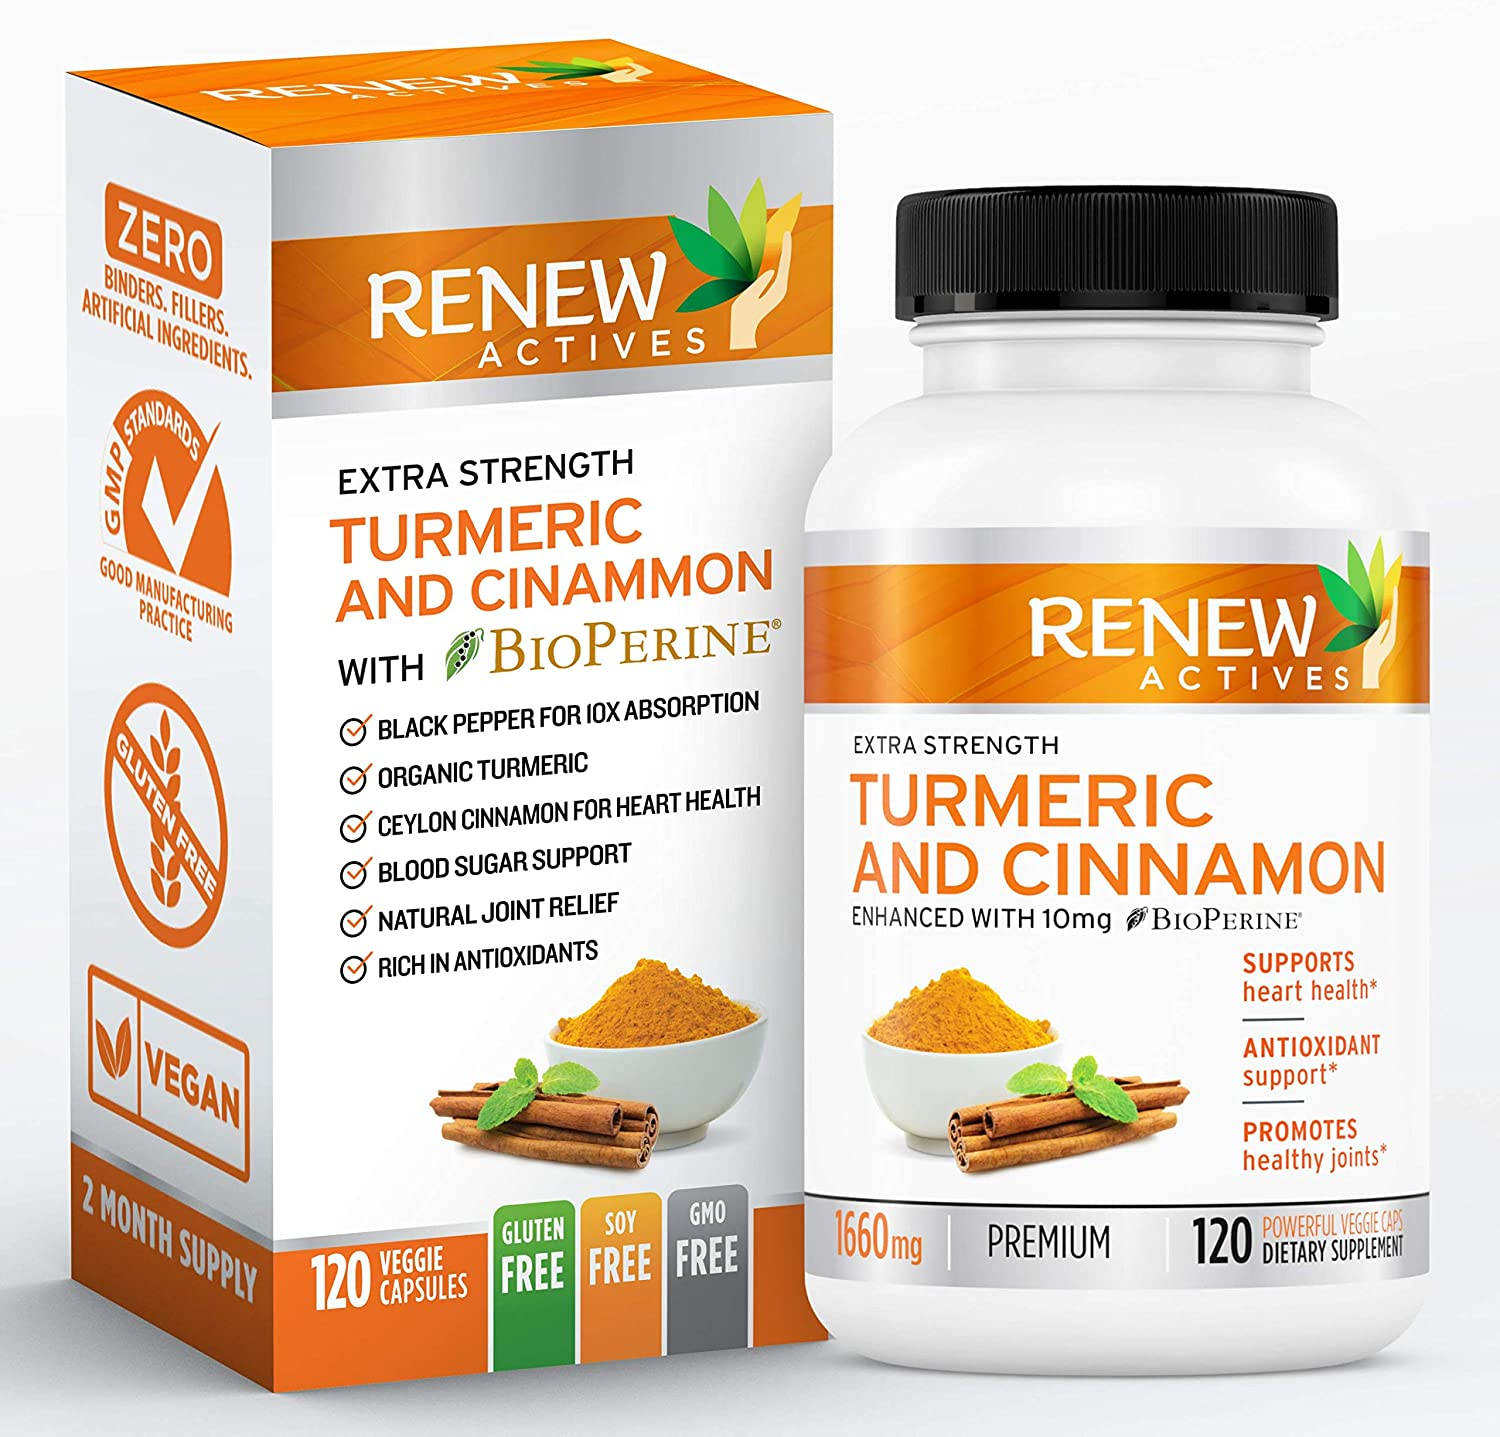 Renew Actives Turmeric Cinnamon Supplement: Anti Inflammatory Dietary Supplements for Heart Health, Joint Pain Relief - Turmeric Curcumin and Ceylon Cinnamon with BioPerine Black Pepper - 120 Capsules